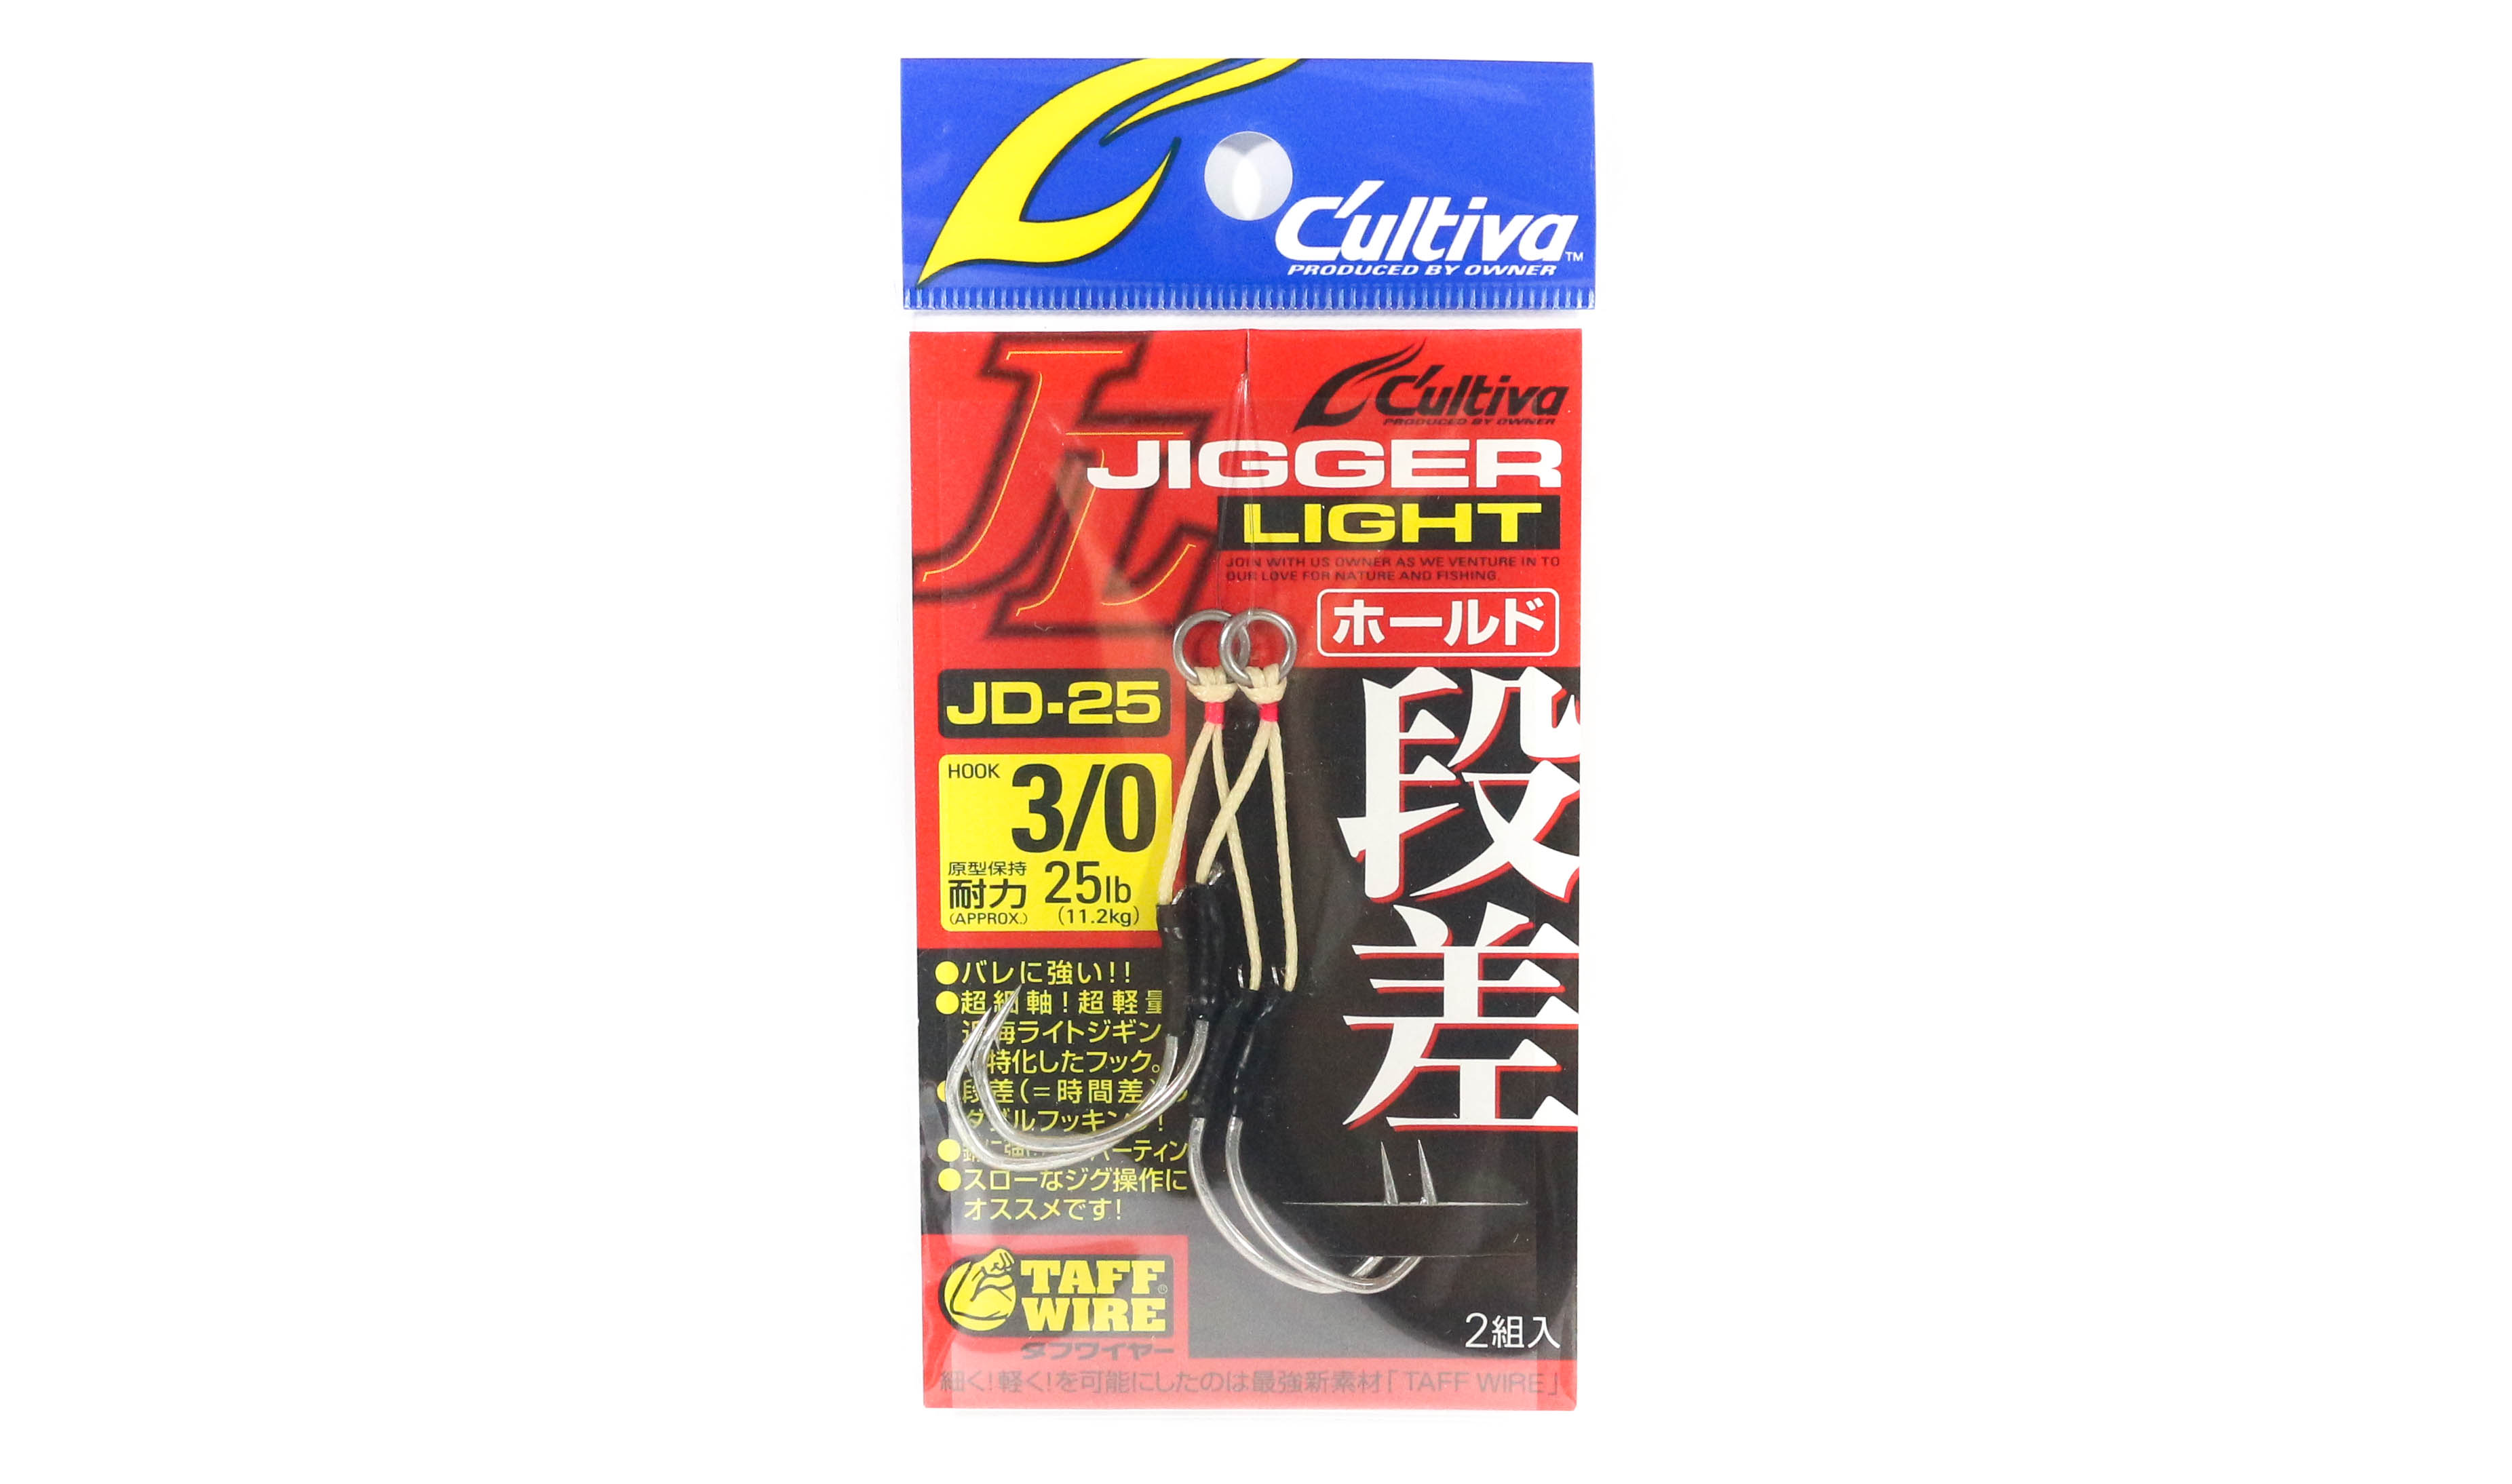 Owner JD-25 Jigger Light Hold Twin Assist Hooks Size 3/0 (8924)